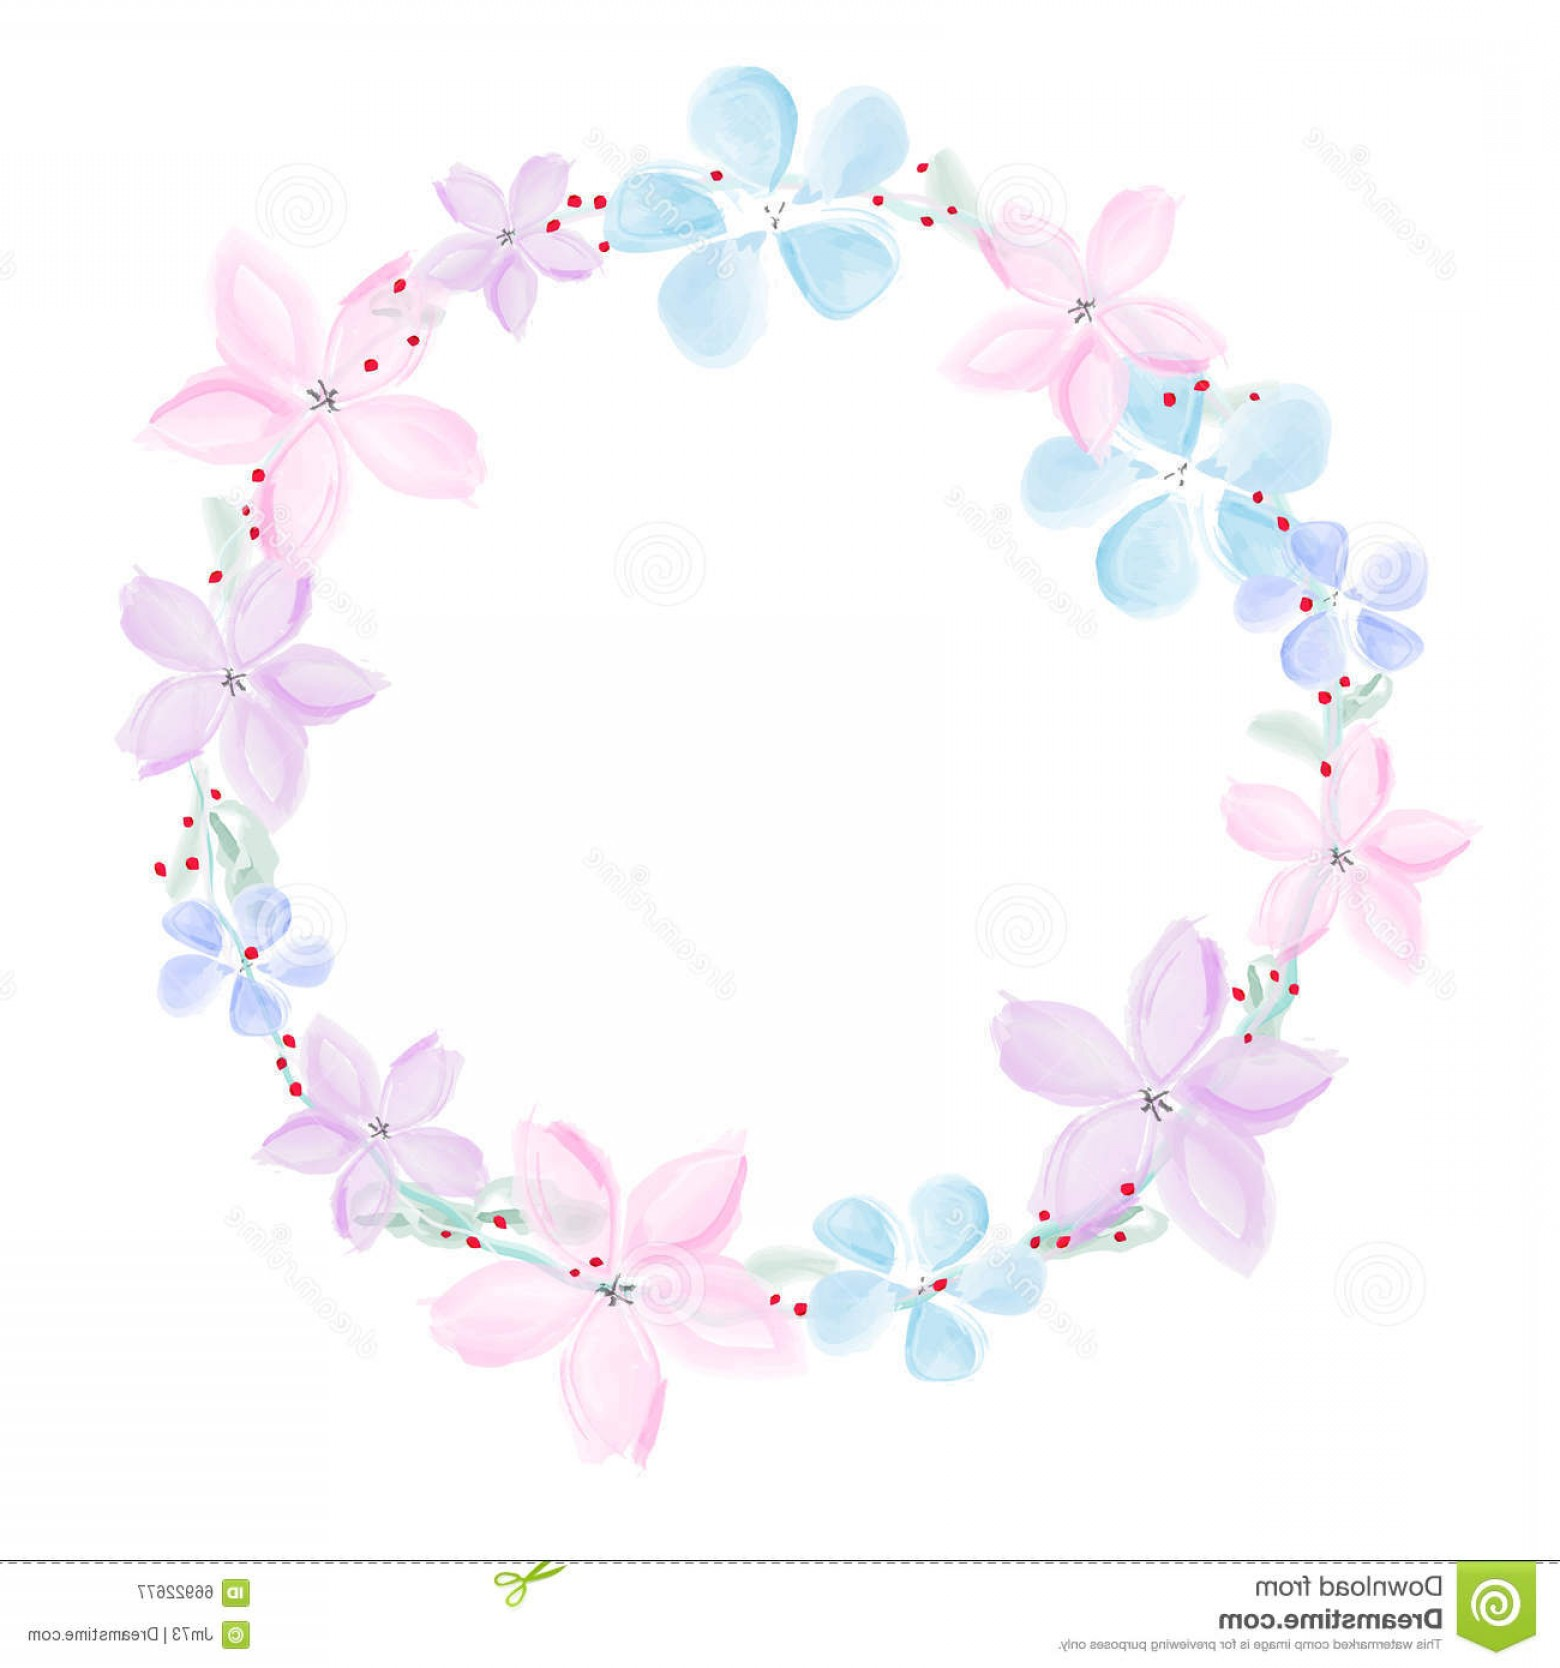 Watercolor Floral Background Vector: Stock Illustration Wreath Abstract Watercolor Flowers White Background Vector Illustration Image